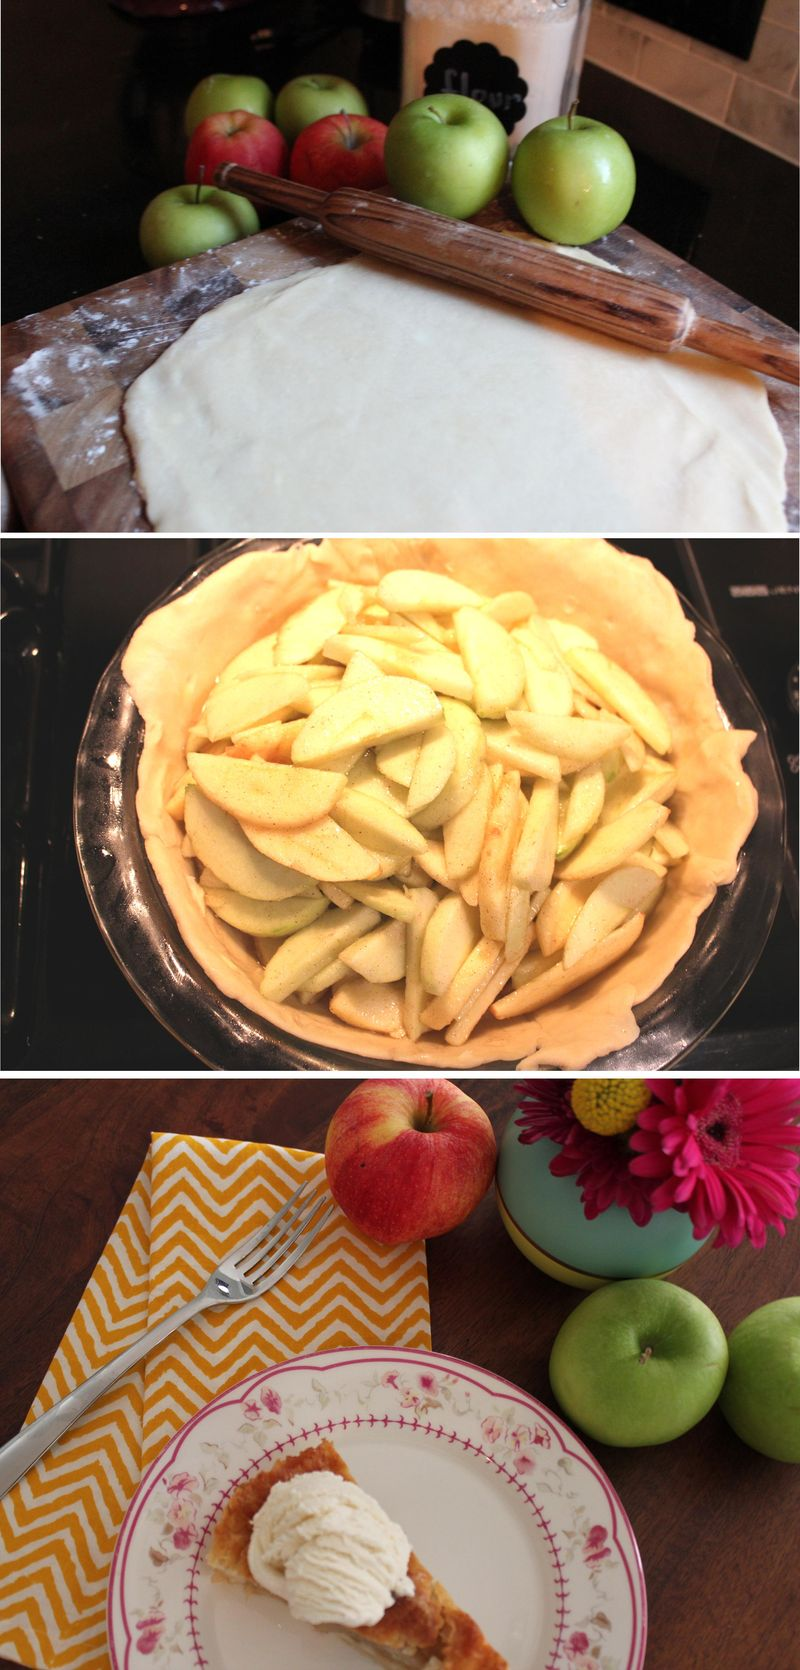 Apple pie steps